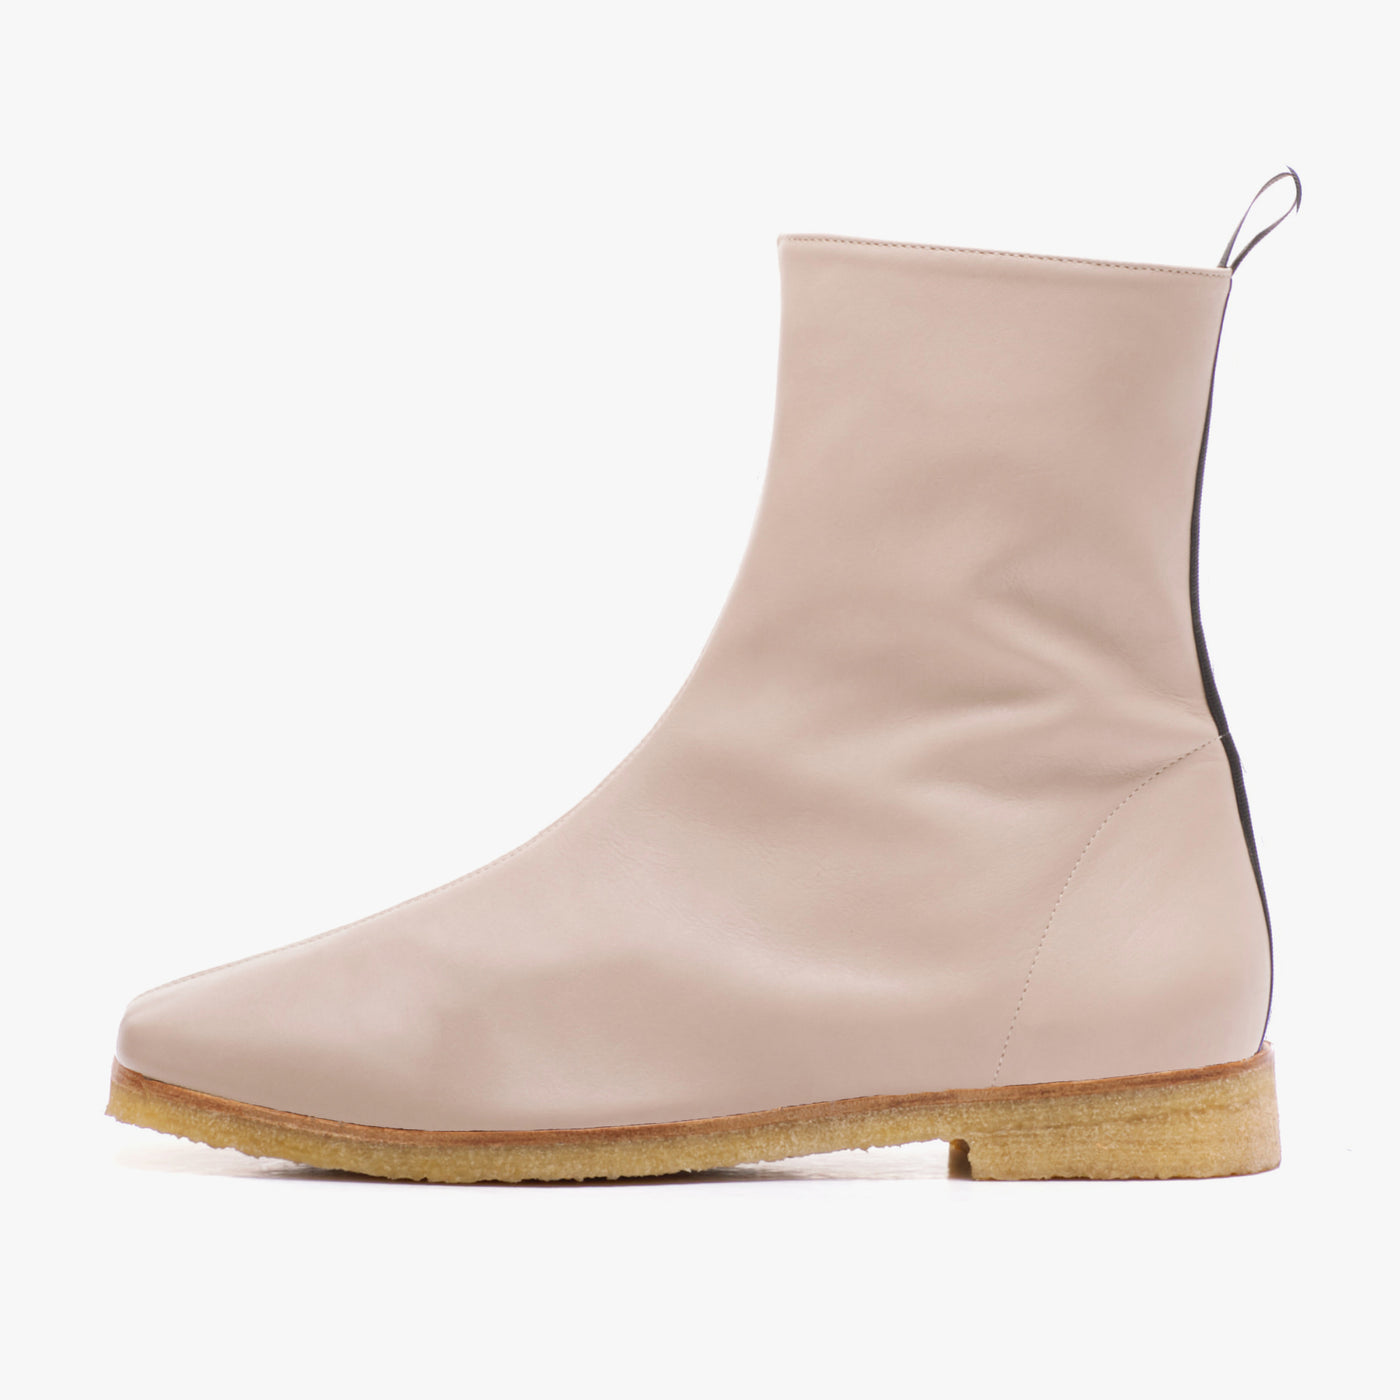 REY CREPE BOOT CREAM